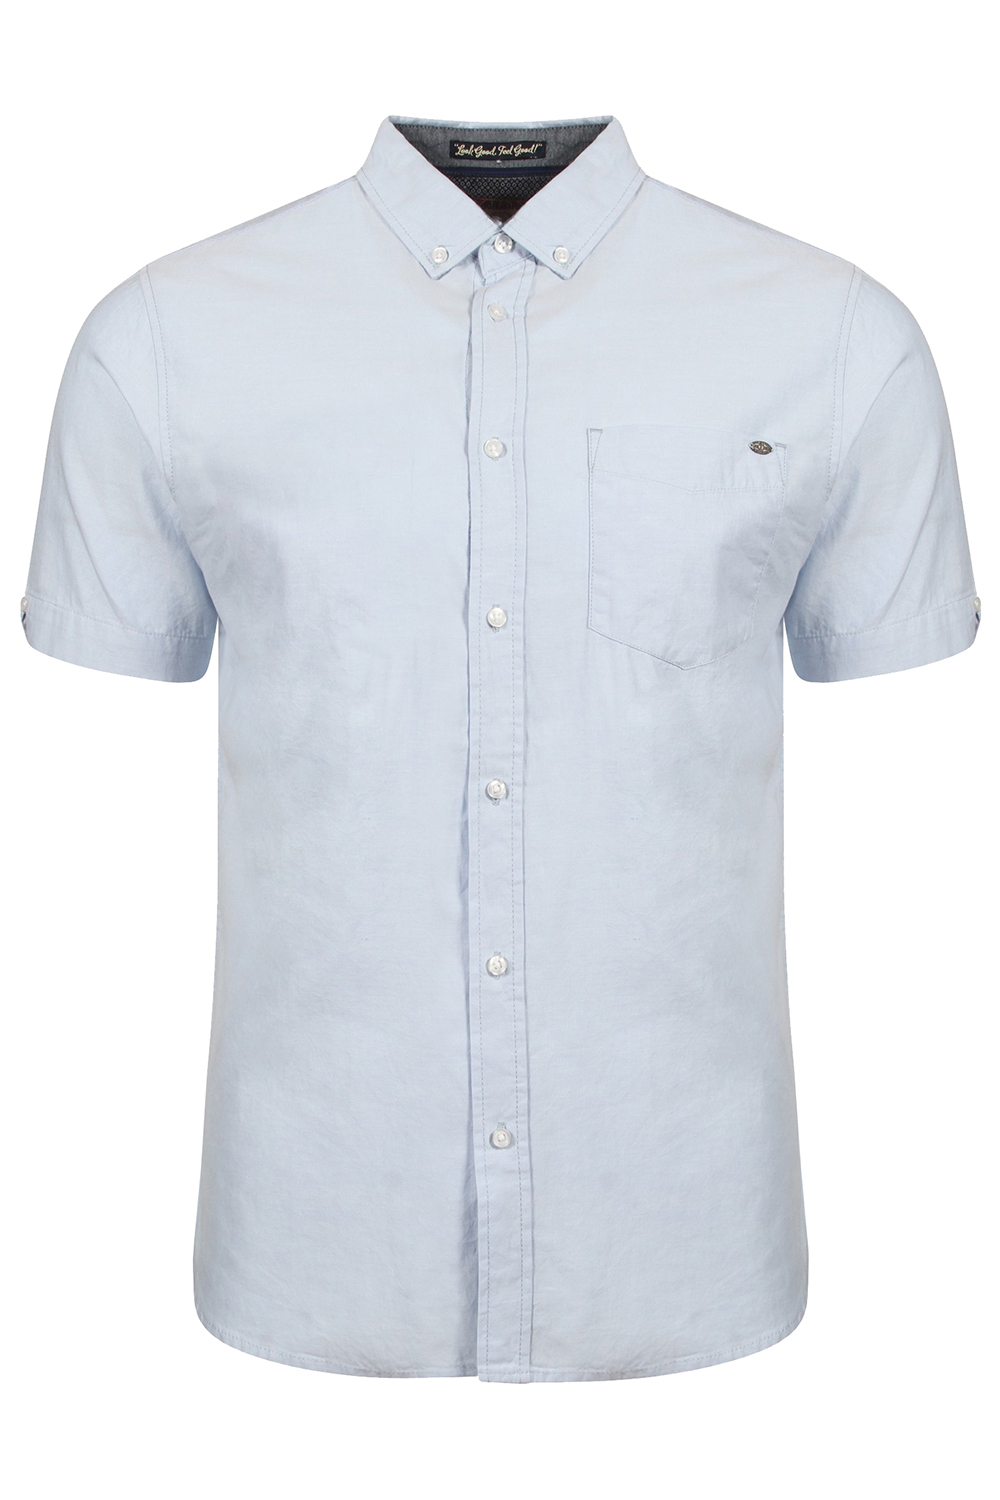 Tokyo-Laundry-Mens-Woodbury-Short-Sleeved-Smart-Casual-Shirt-Collared-Cotton-Top thumbnail 5